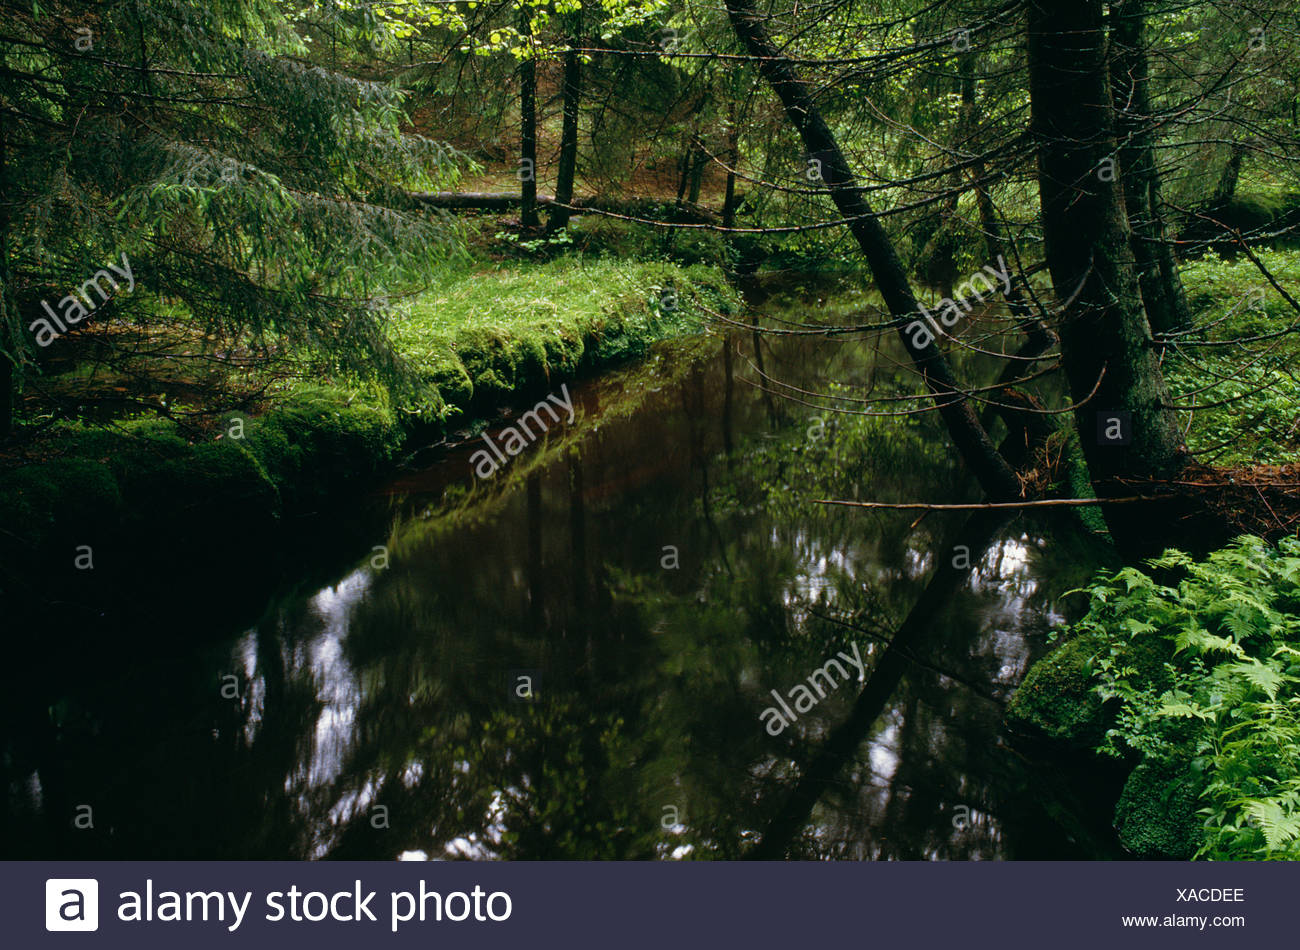 View of stream passing through coniferous forest Stock Photo